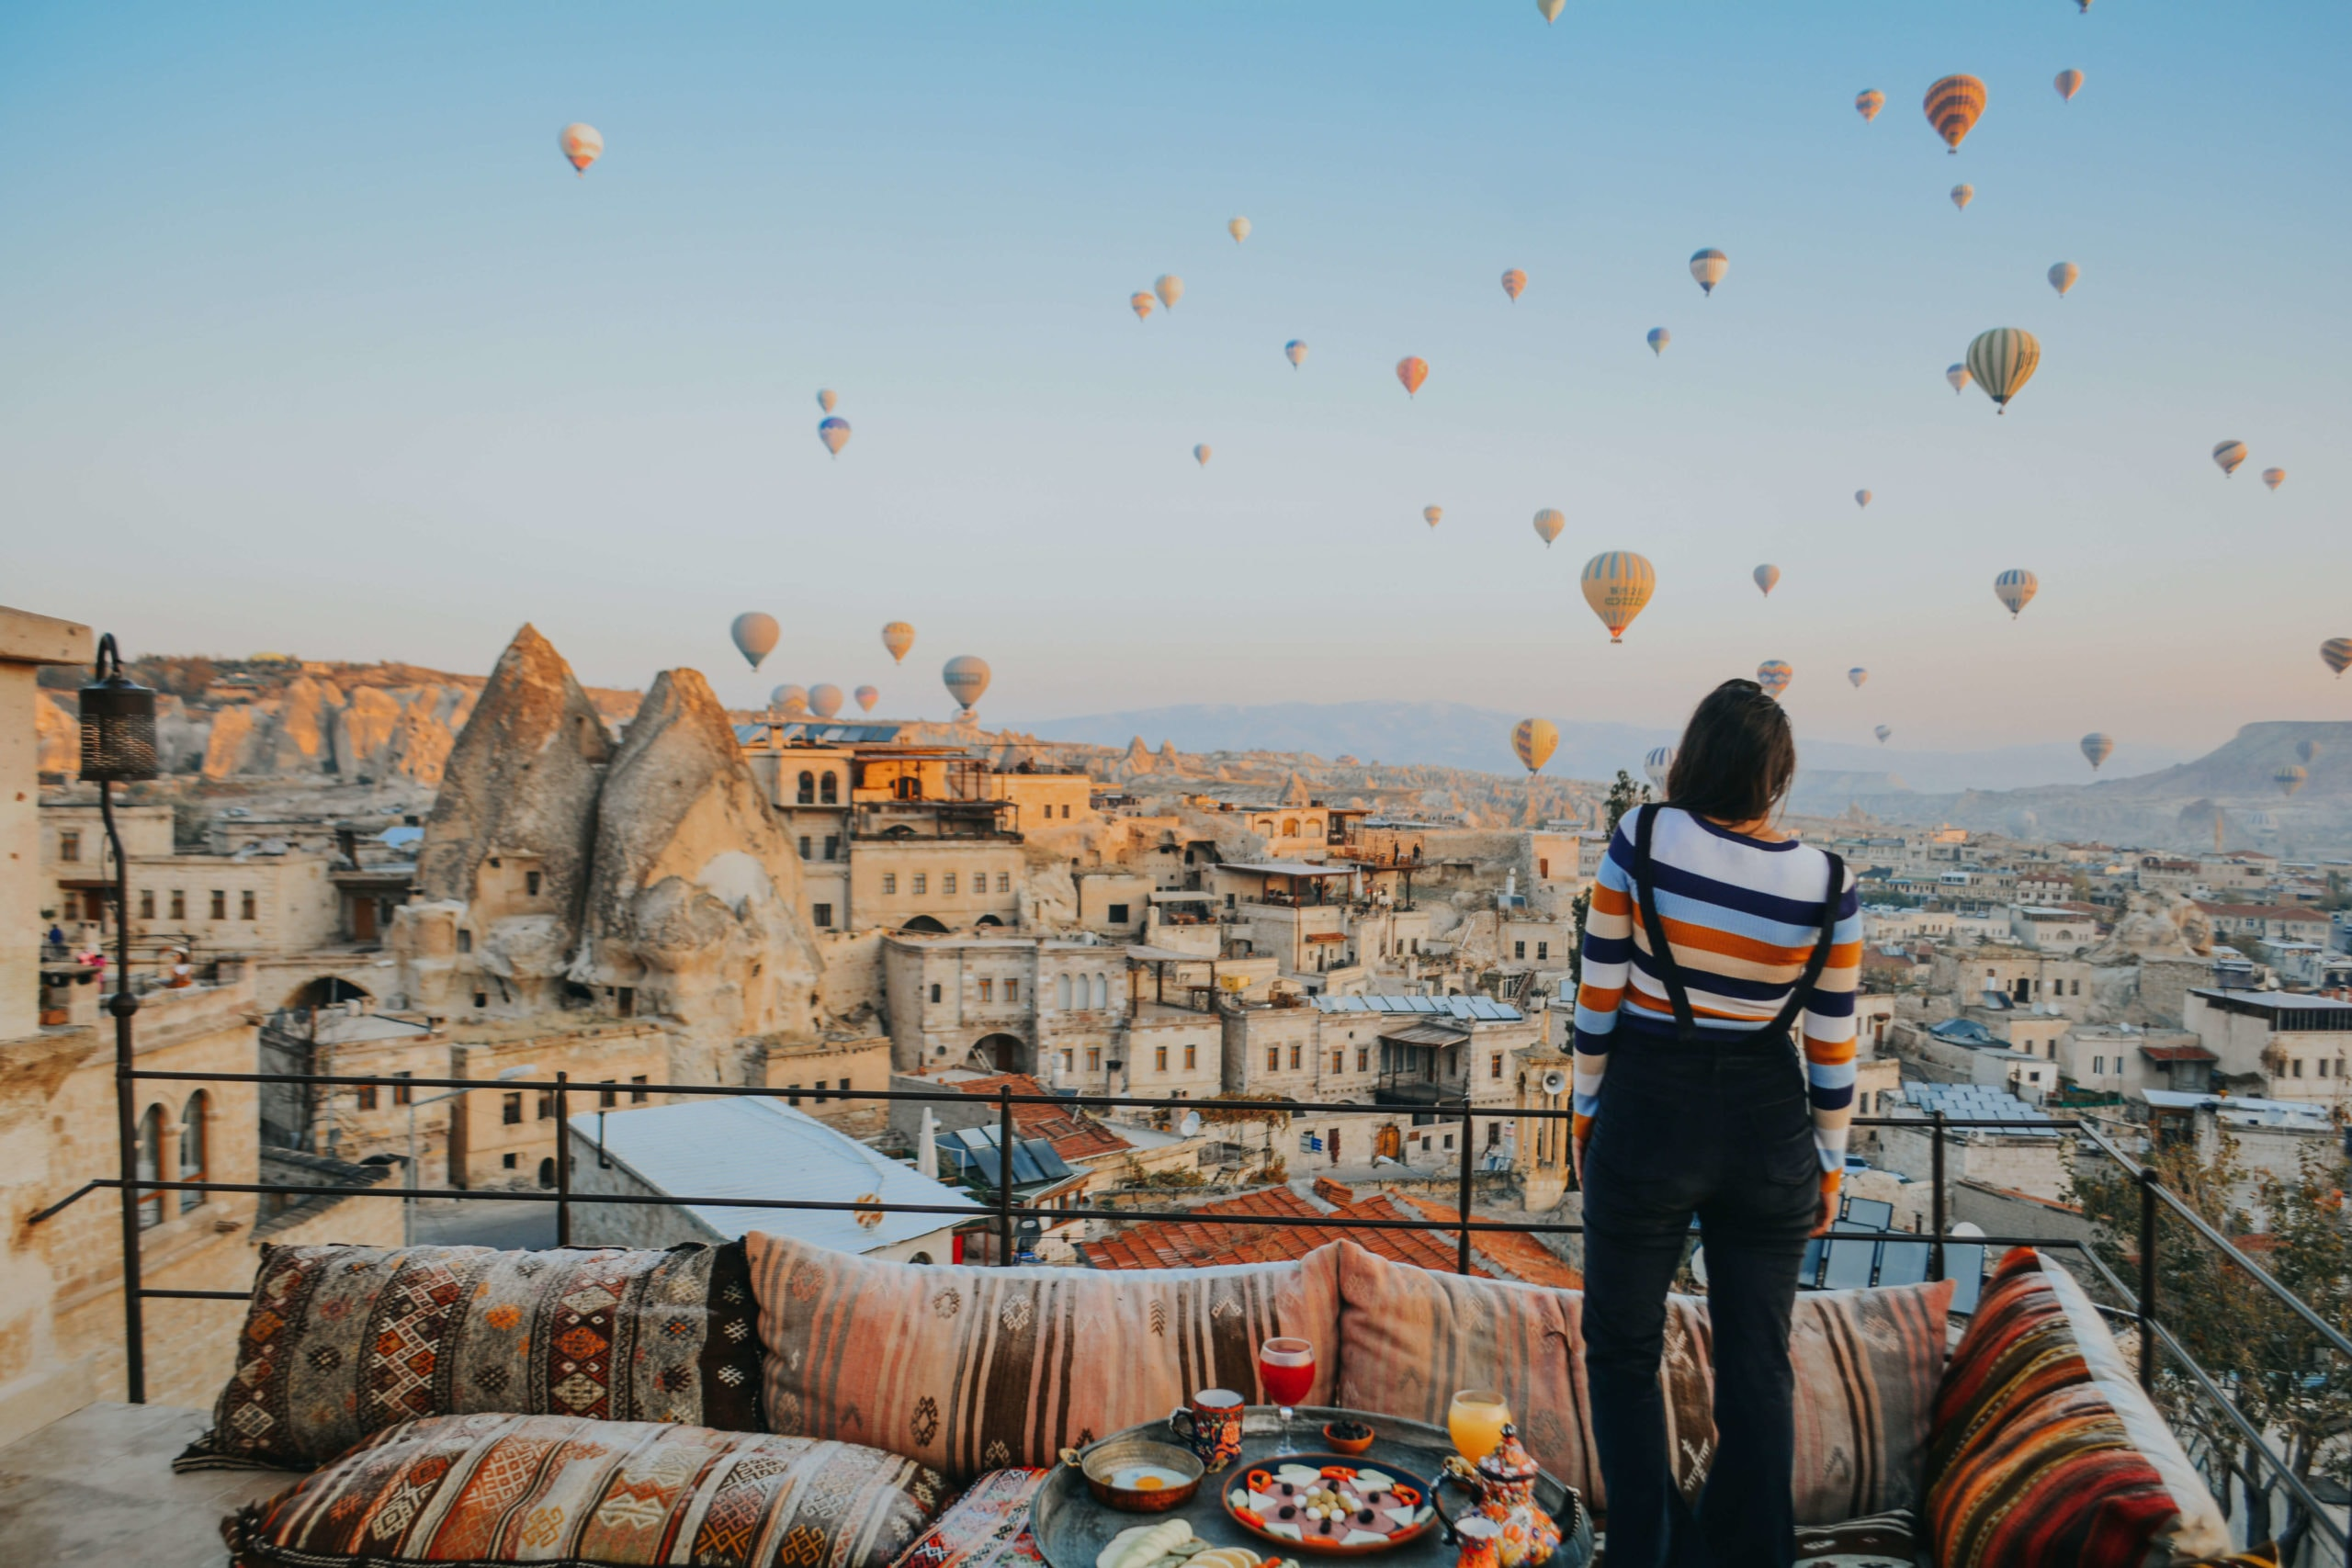 Travel bloggers reveal their favorite experiences in the world - Hot air ballooning in Cappadocia, Turkey